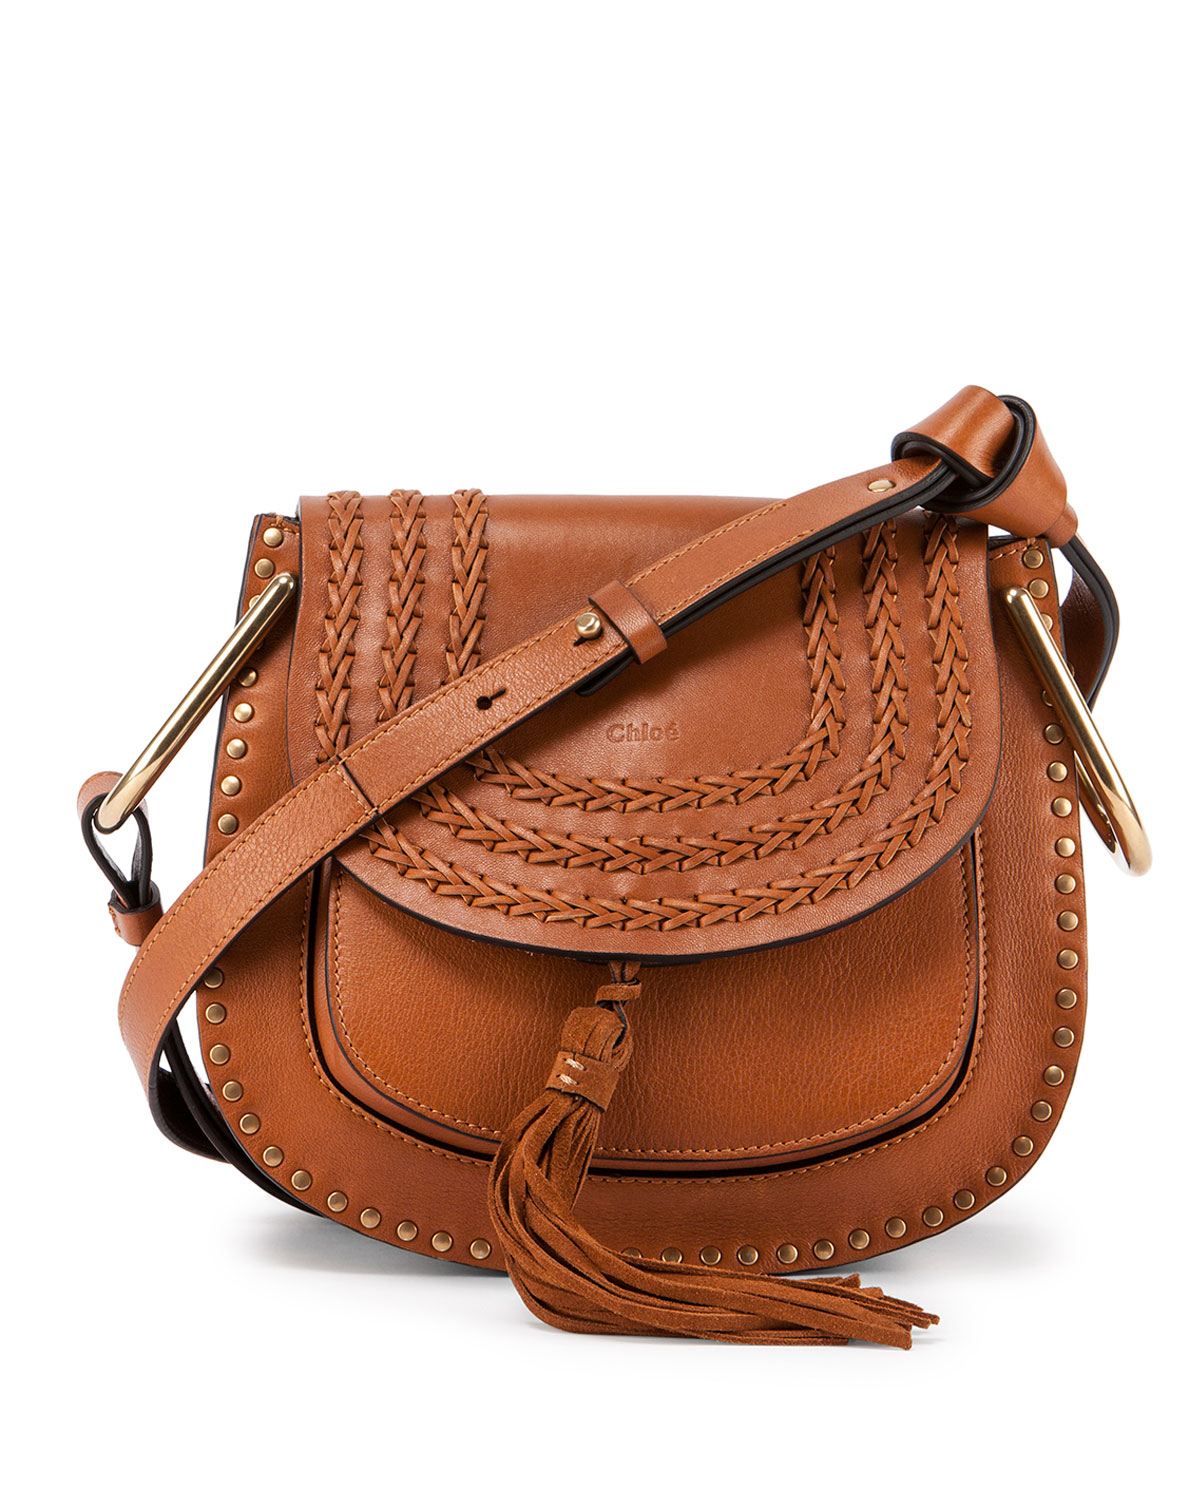 Chloé Chloé Nano 'hayley' Crossbody Bag in Brown | Lyst